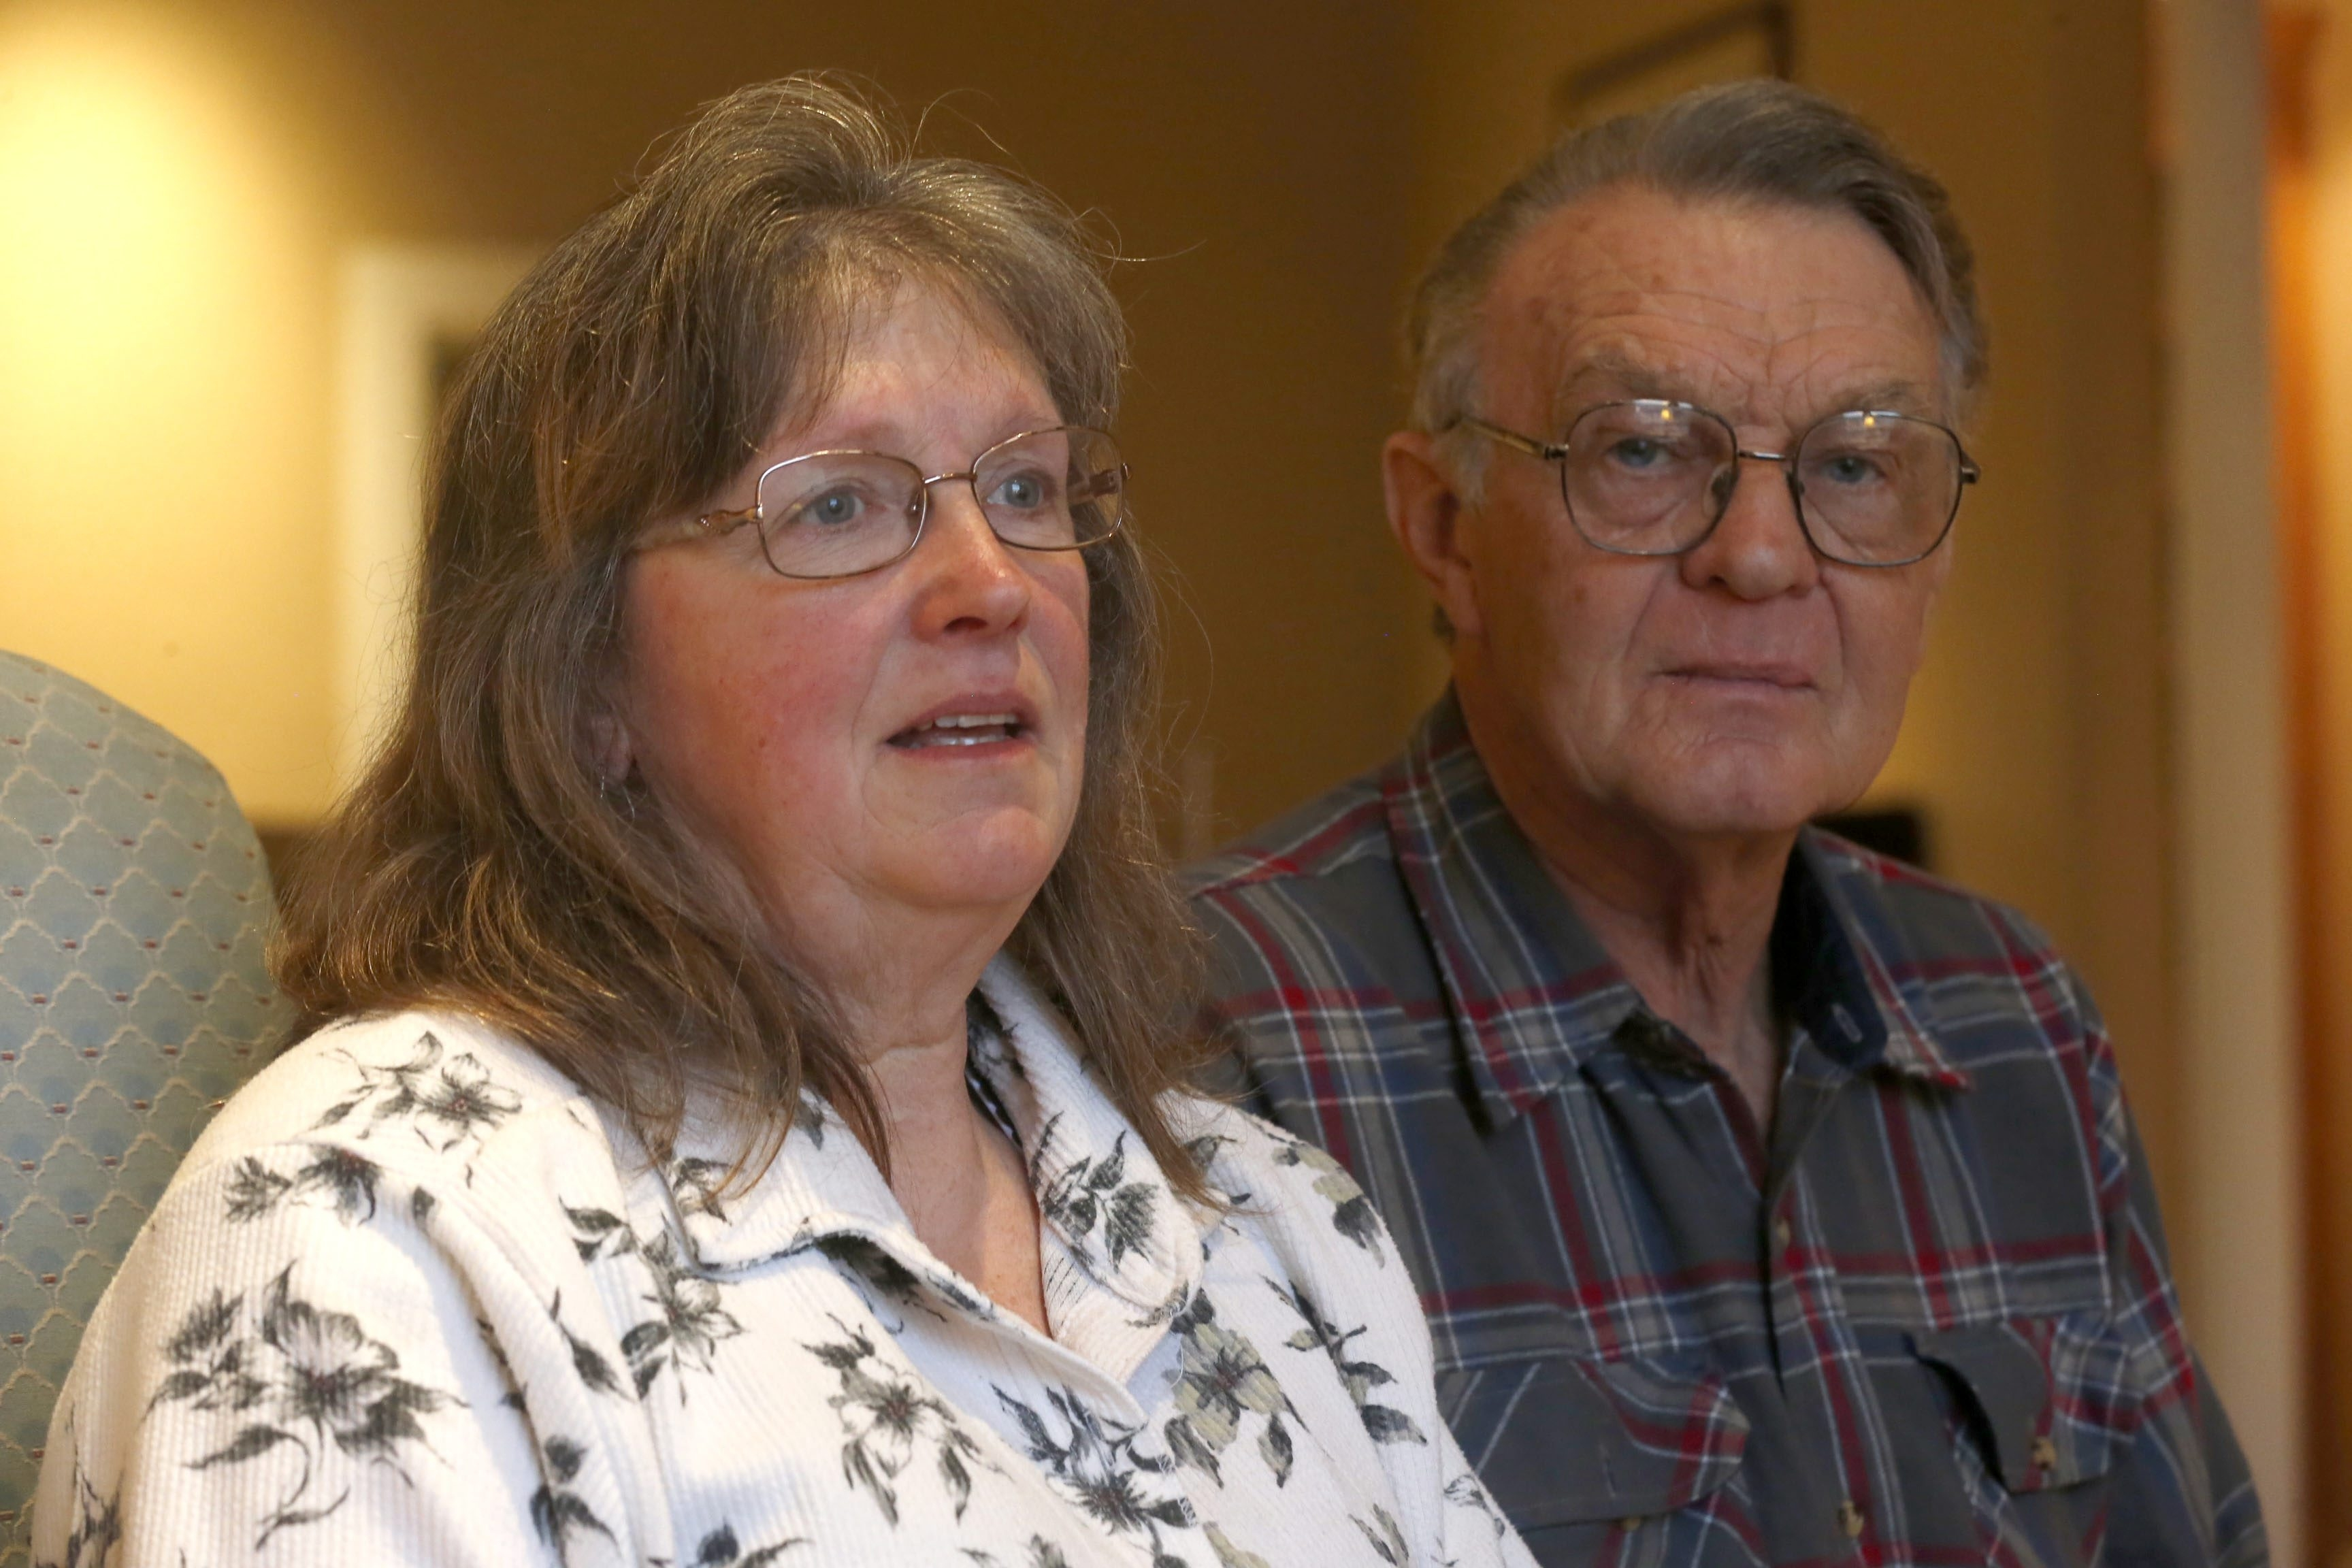 """""""We got behind in cleaning, we weren't there all the time. They all got fed and watered every day. That was a priority, whatever else was going on."""" – Don George with his wife, Bonnie, at their attorneys' office"""